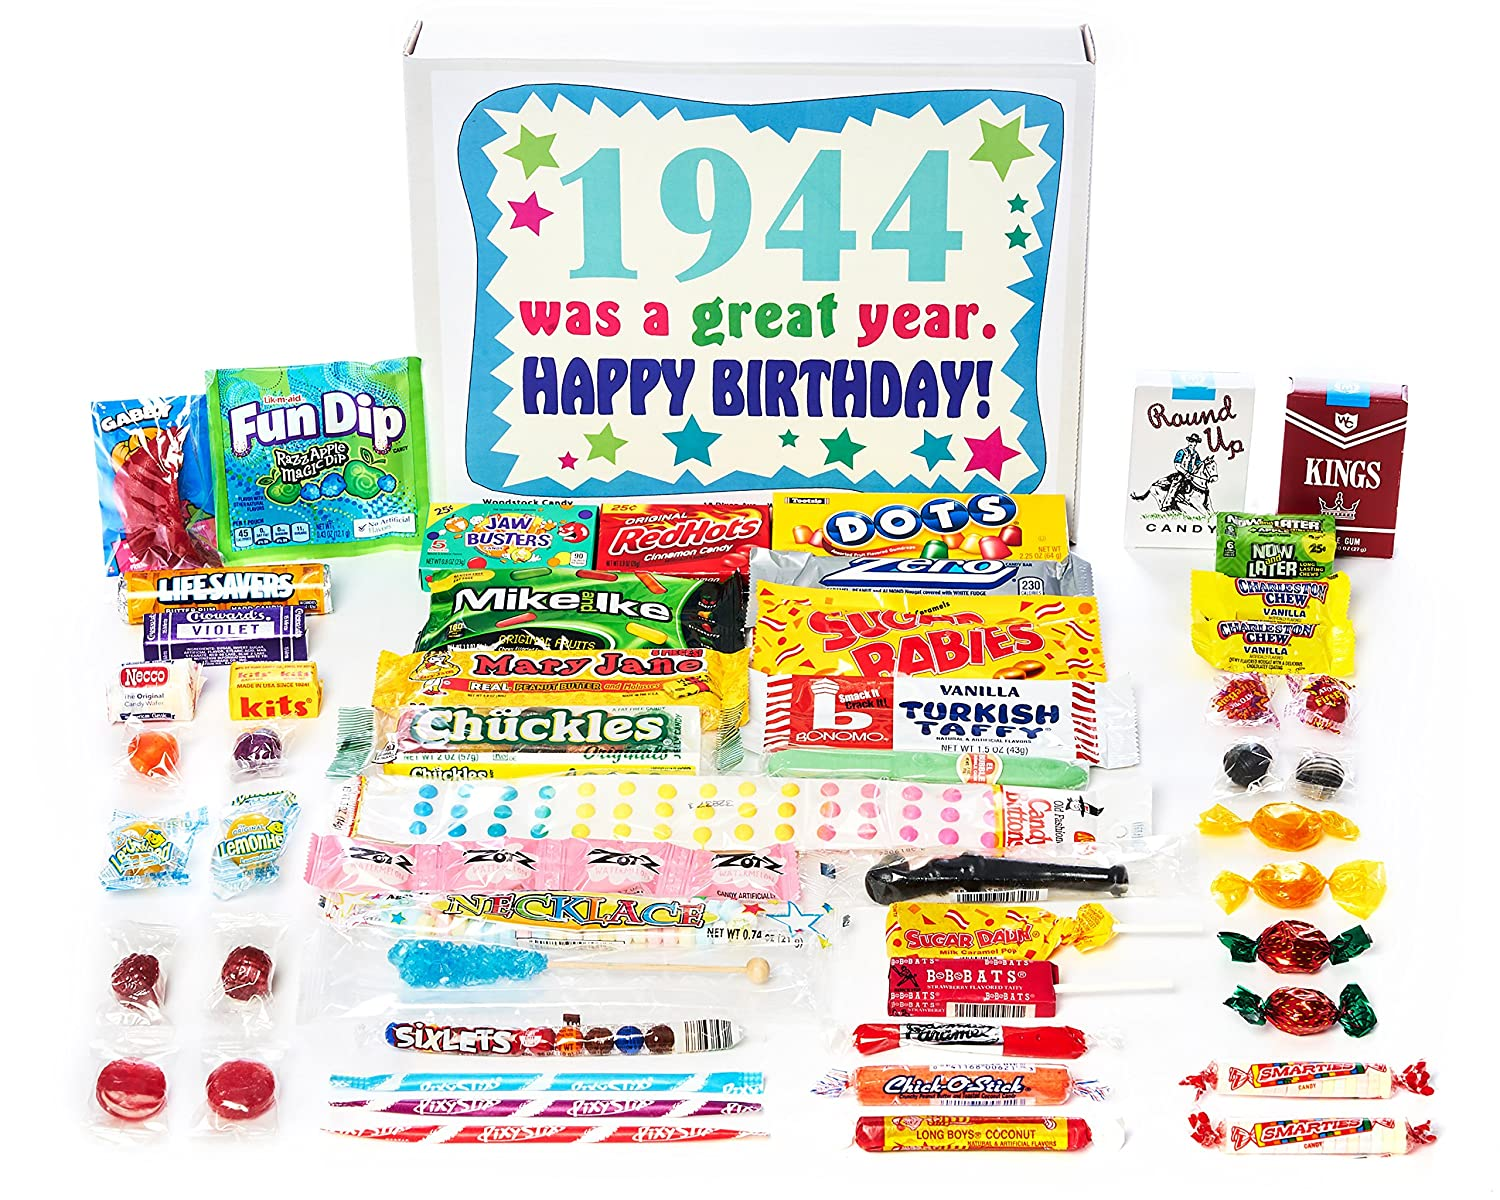 Woodstock Candy ~ 1944 77th Birthday Gift Box of Nostalgic Retro Candy from Childhood for 77 Year Old Man or Woman Born 1944